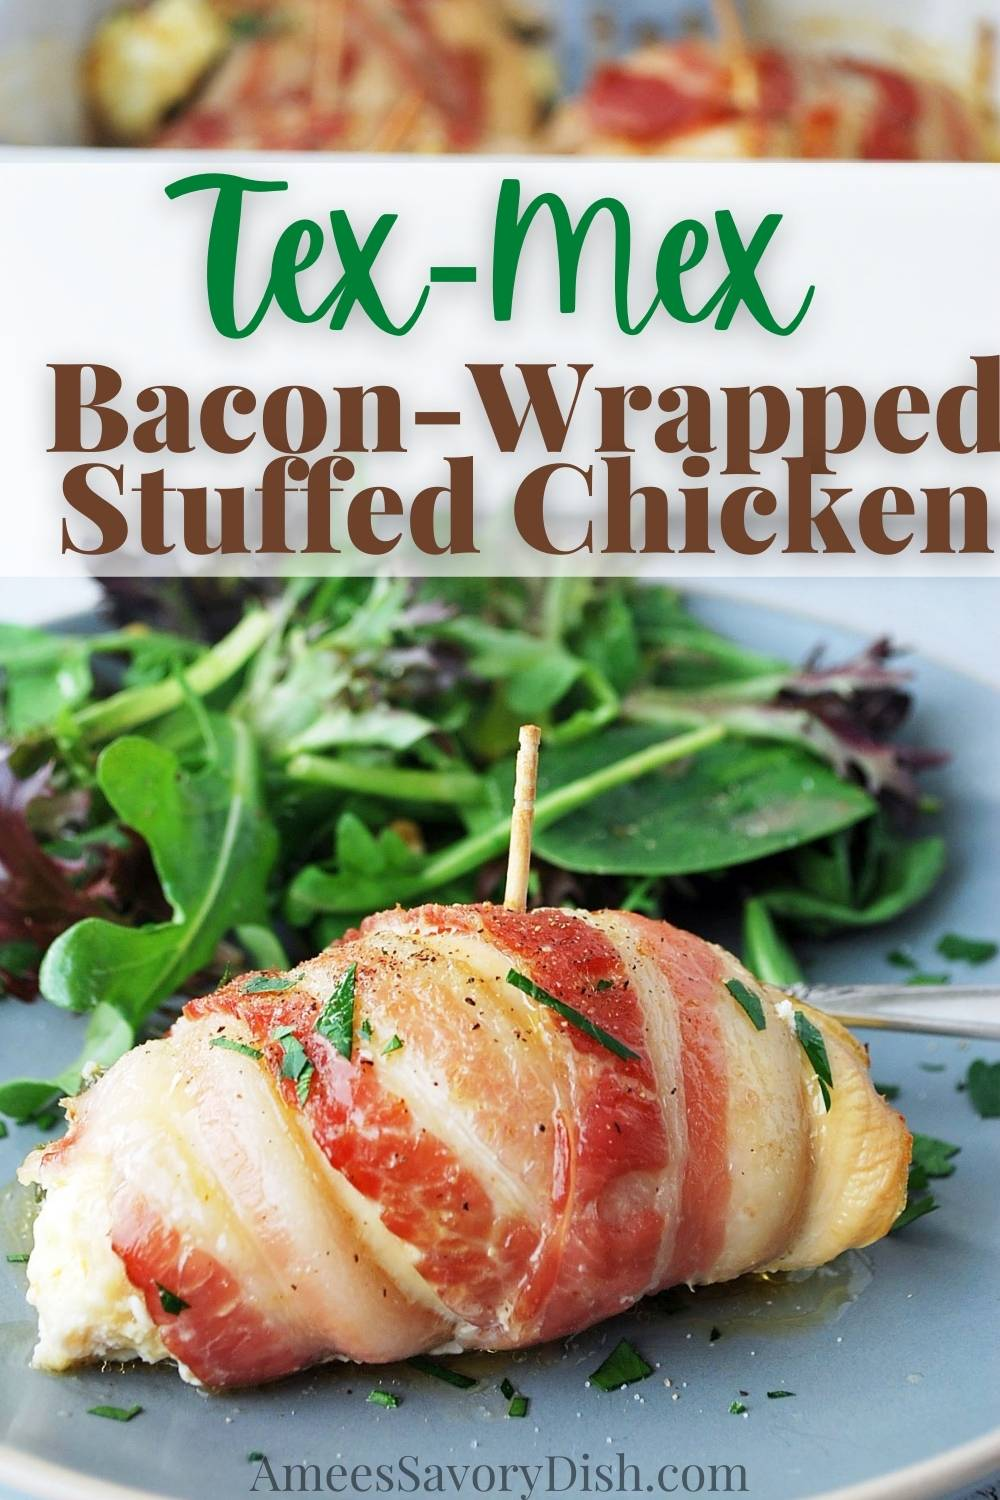 Tex-Mex bacon-wrapped stuffed chicken is made with thinly sliced boneless chicken breasts stuffed with a jalapeño cheese mixture, wrapped in bacon, and baked to perfection. This delicious bacon-wrapped stuffed chicken is also packed with 30 grams of protein! #texmex #chickenrollups #baconchickenwraps #chickenrecipe #glutenfreedinner #baconwrappedstuffedchicken via @Ameessavorydish